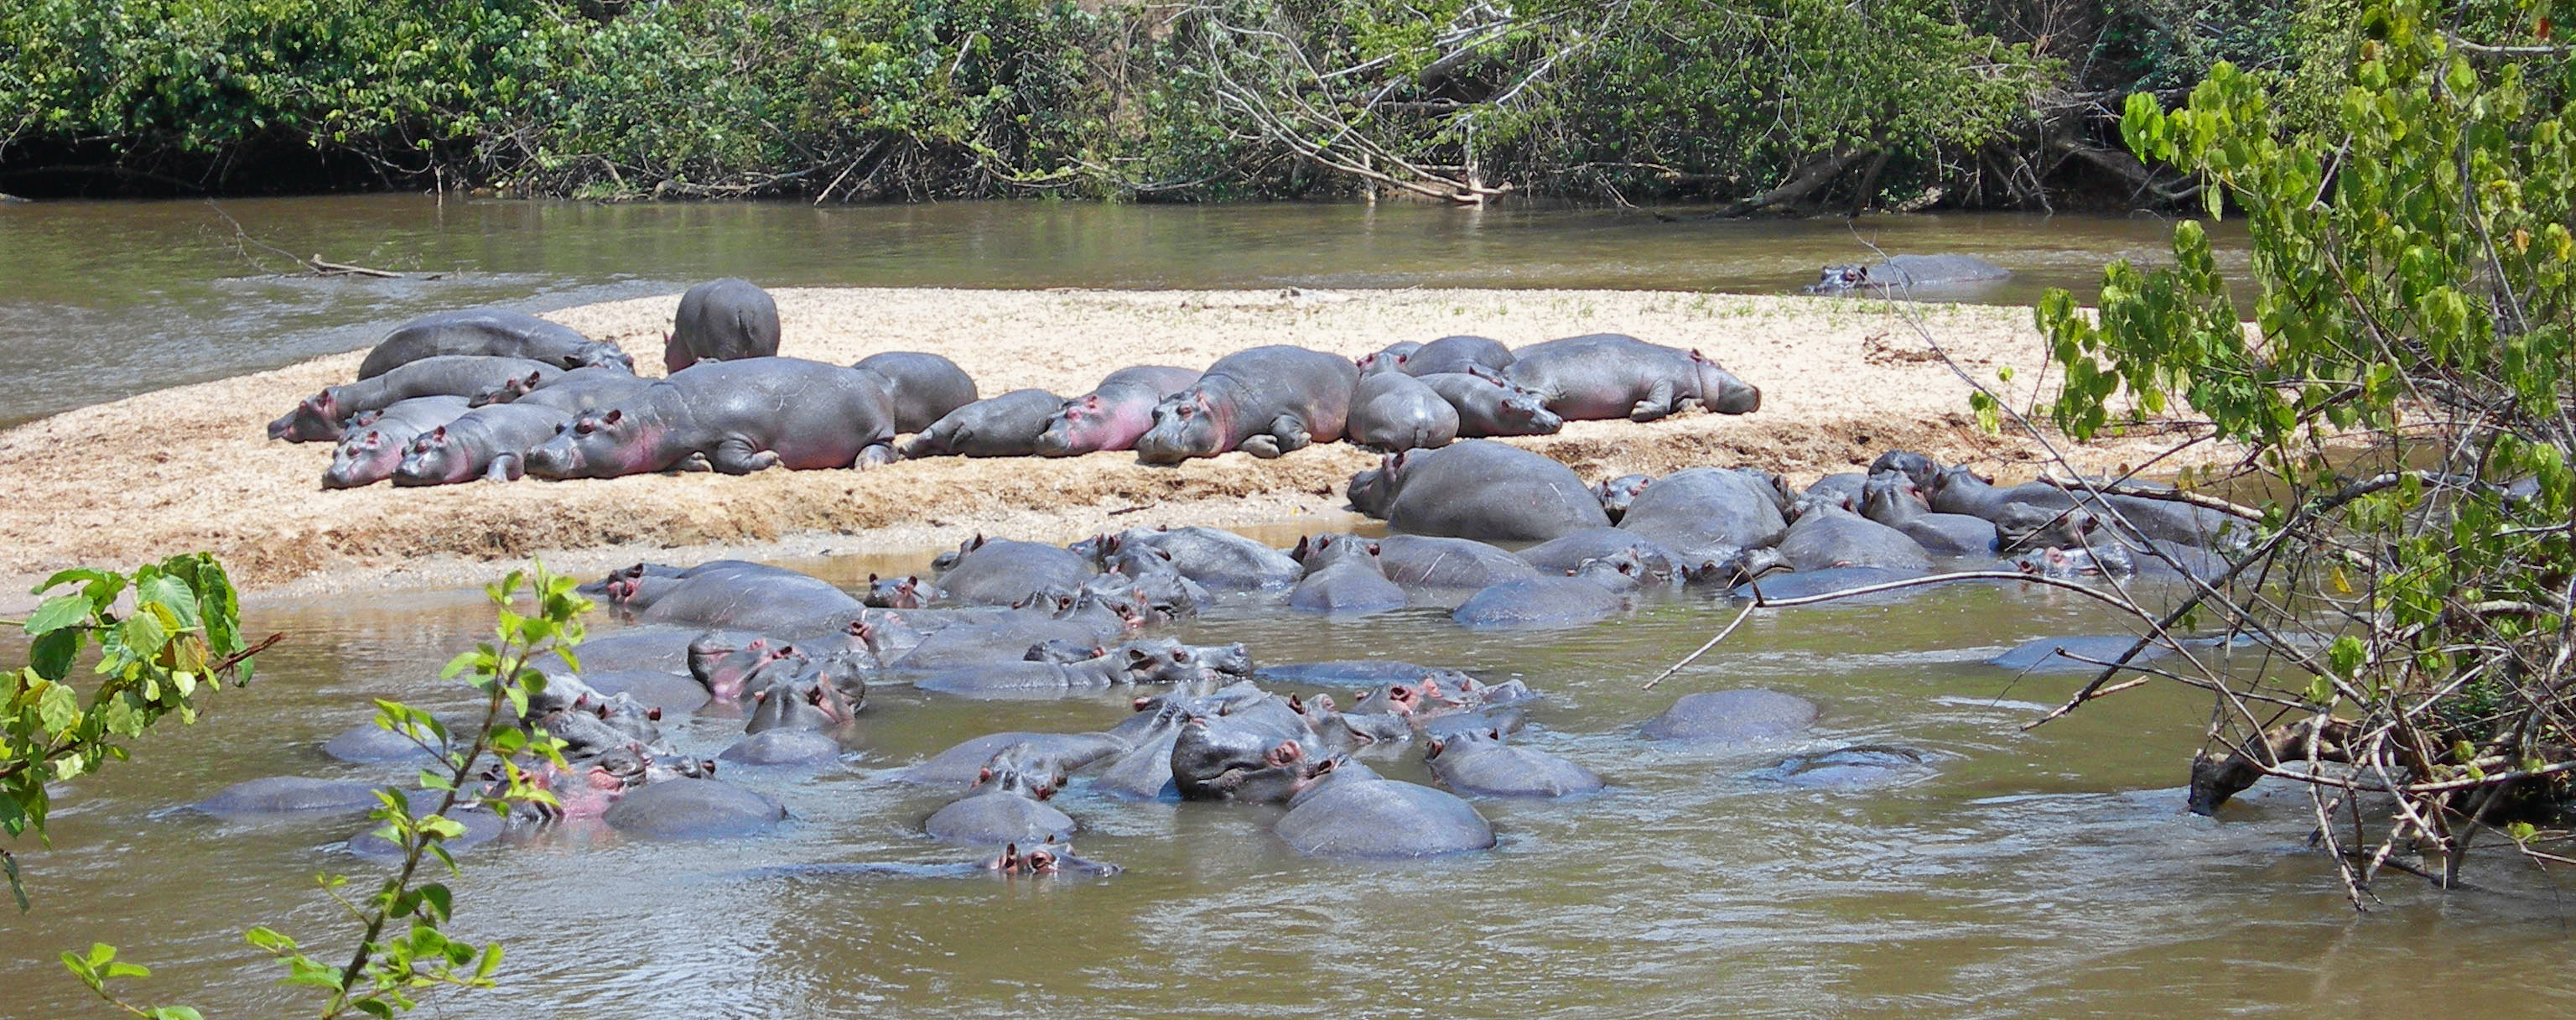 Hippos in Queen Elizabeth National Park, 2009.